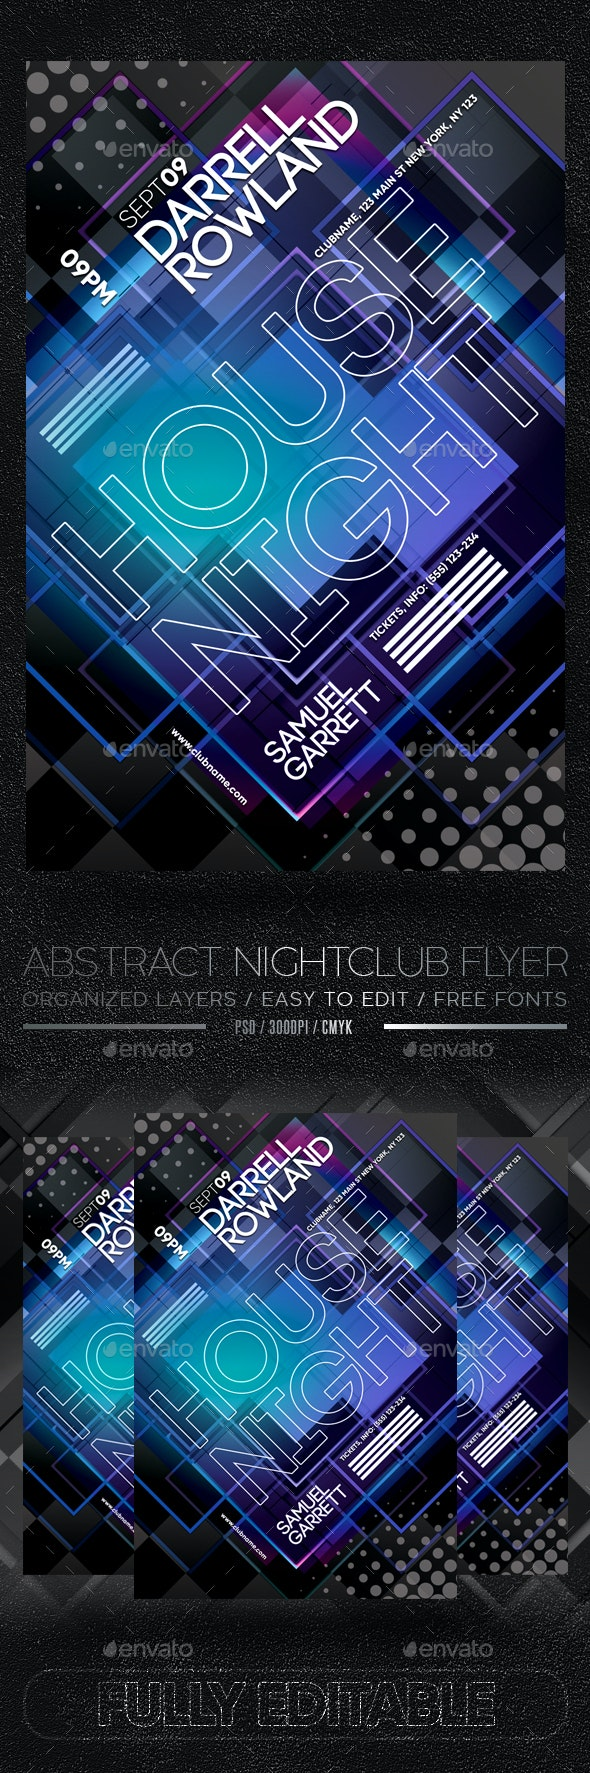 Abstract Nightclub Flyer - Clubs & Parties Events